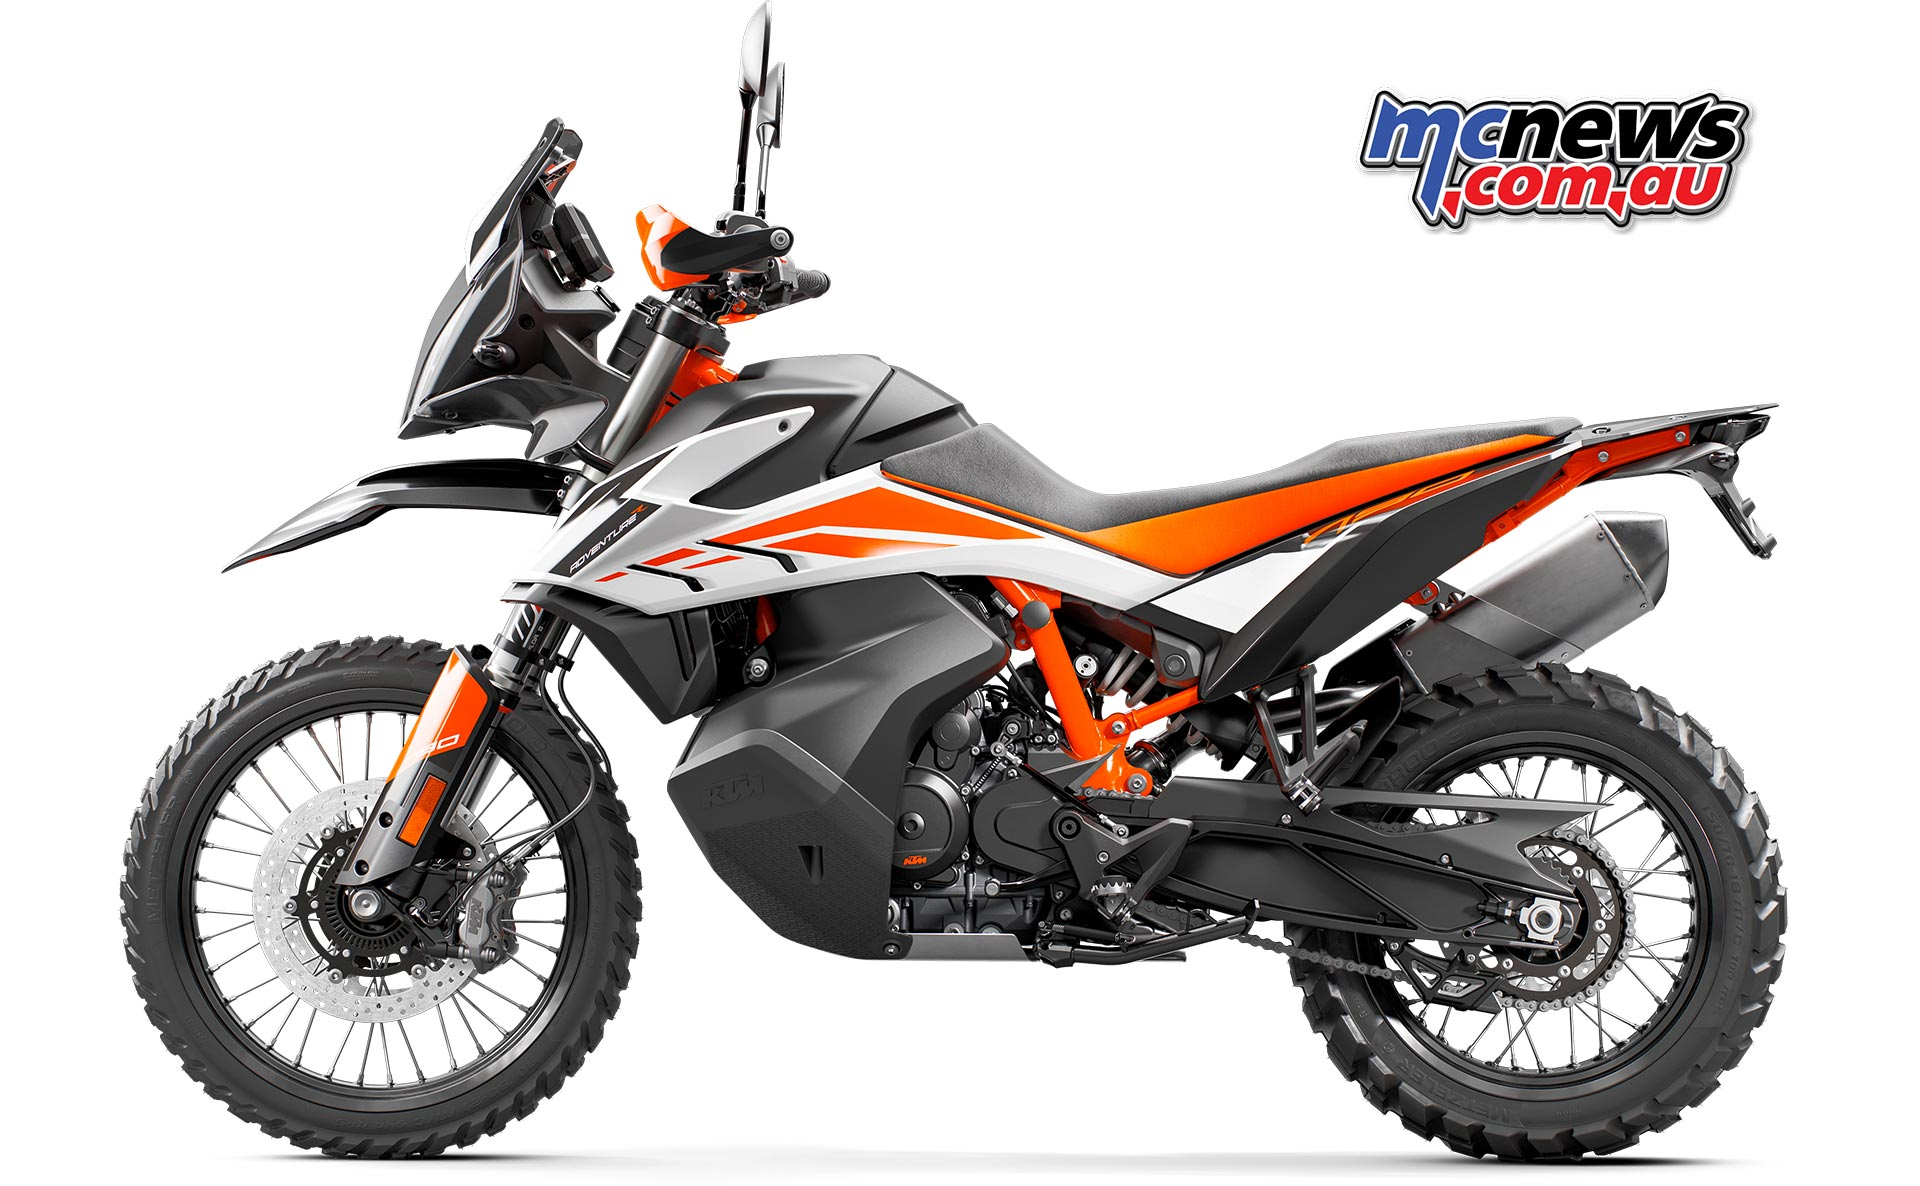 Ktm 790 Adventure R 95hp 88nm 189kg June 2019